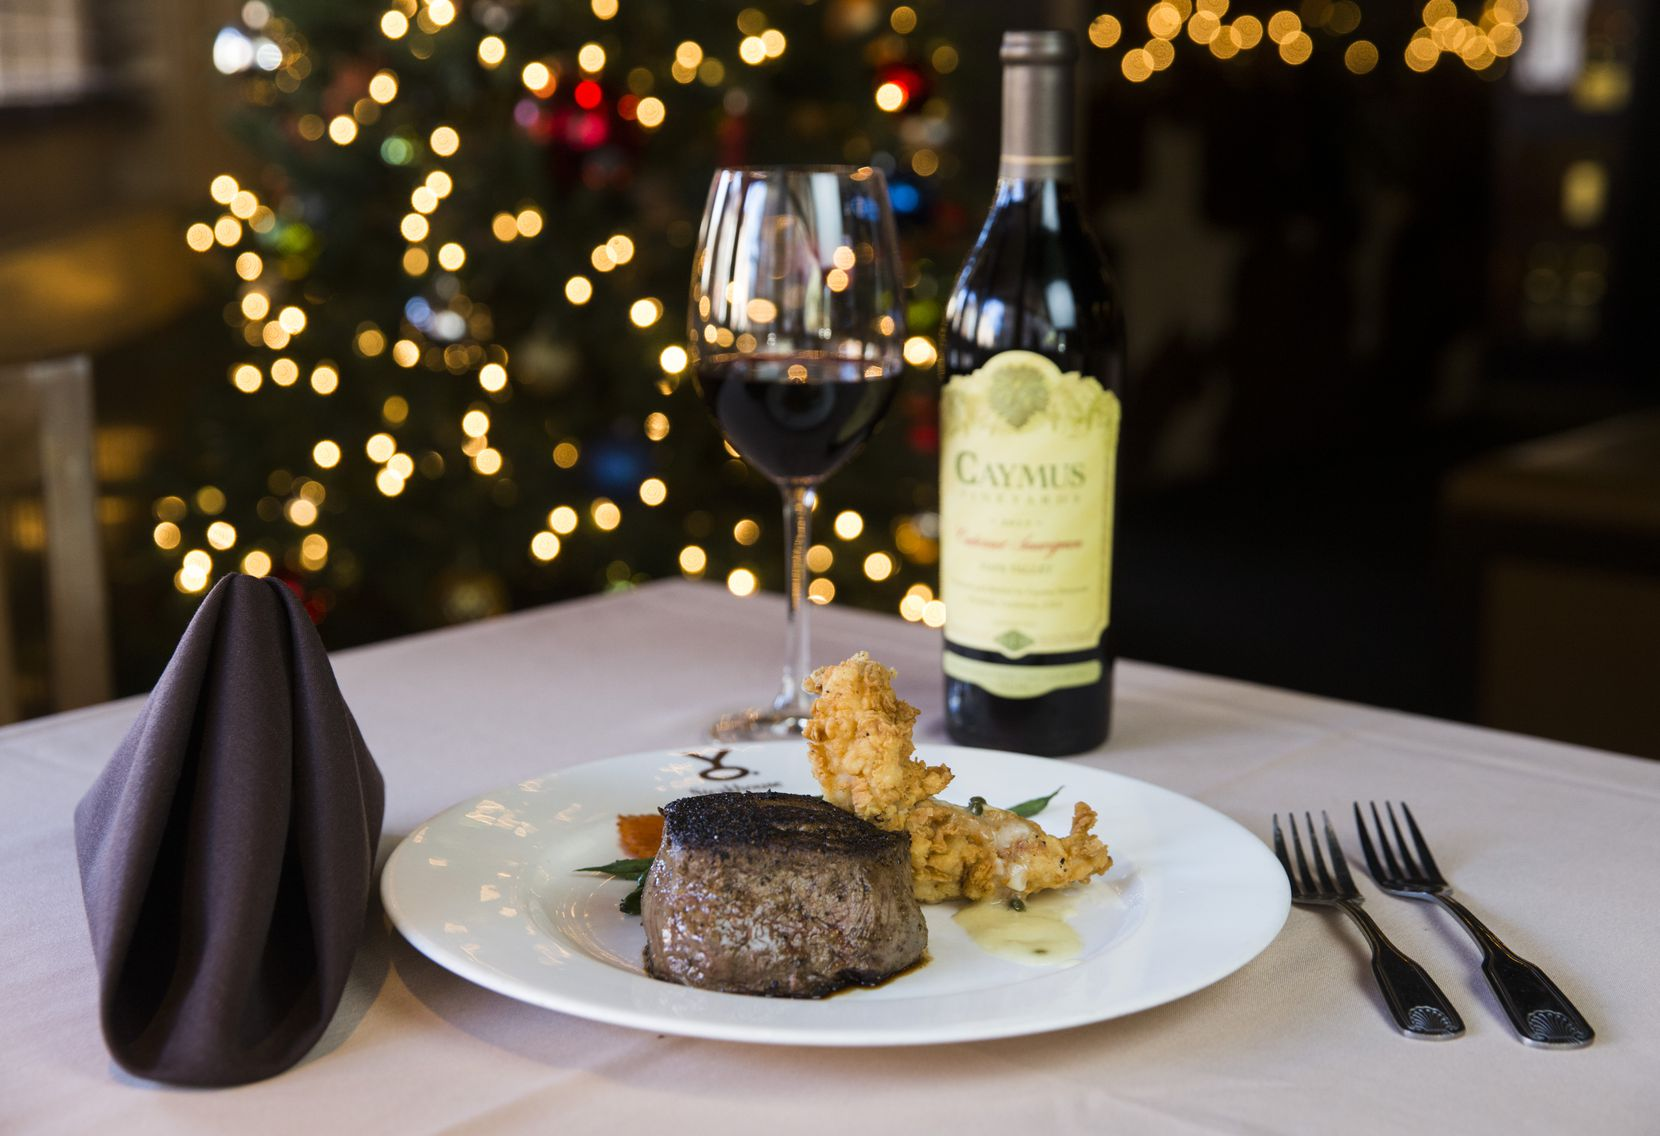 Petite filet and chicken fried lobster paired with a glass of Caymus Vineyards Cabernet Sauvignon as part of Y.O. Ranch Steakhouse's New Year's Eve menu, as photographed on Tuesday, December 17, 2019 in Dallas. (Ashley Landis/The Dallas Morning News)